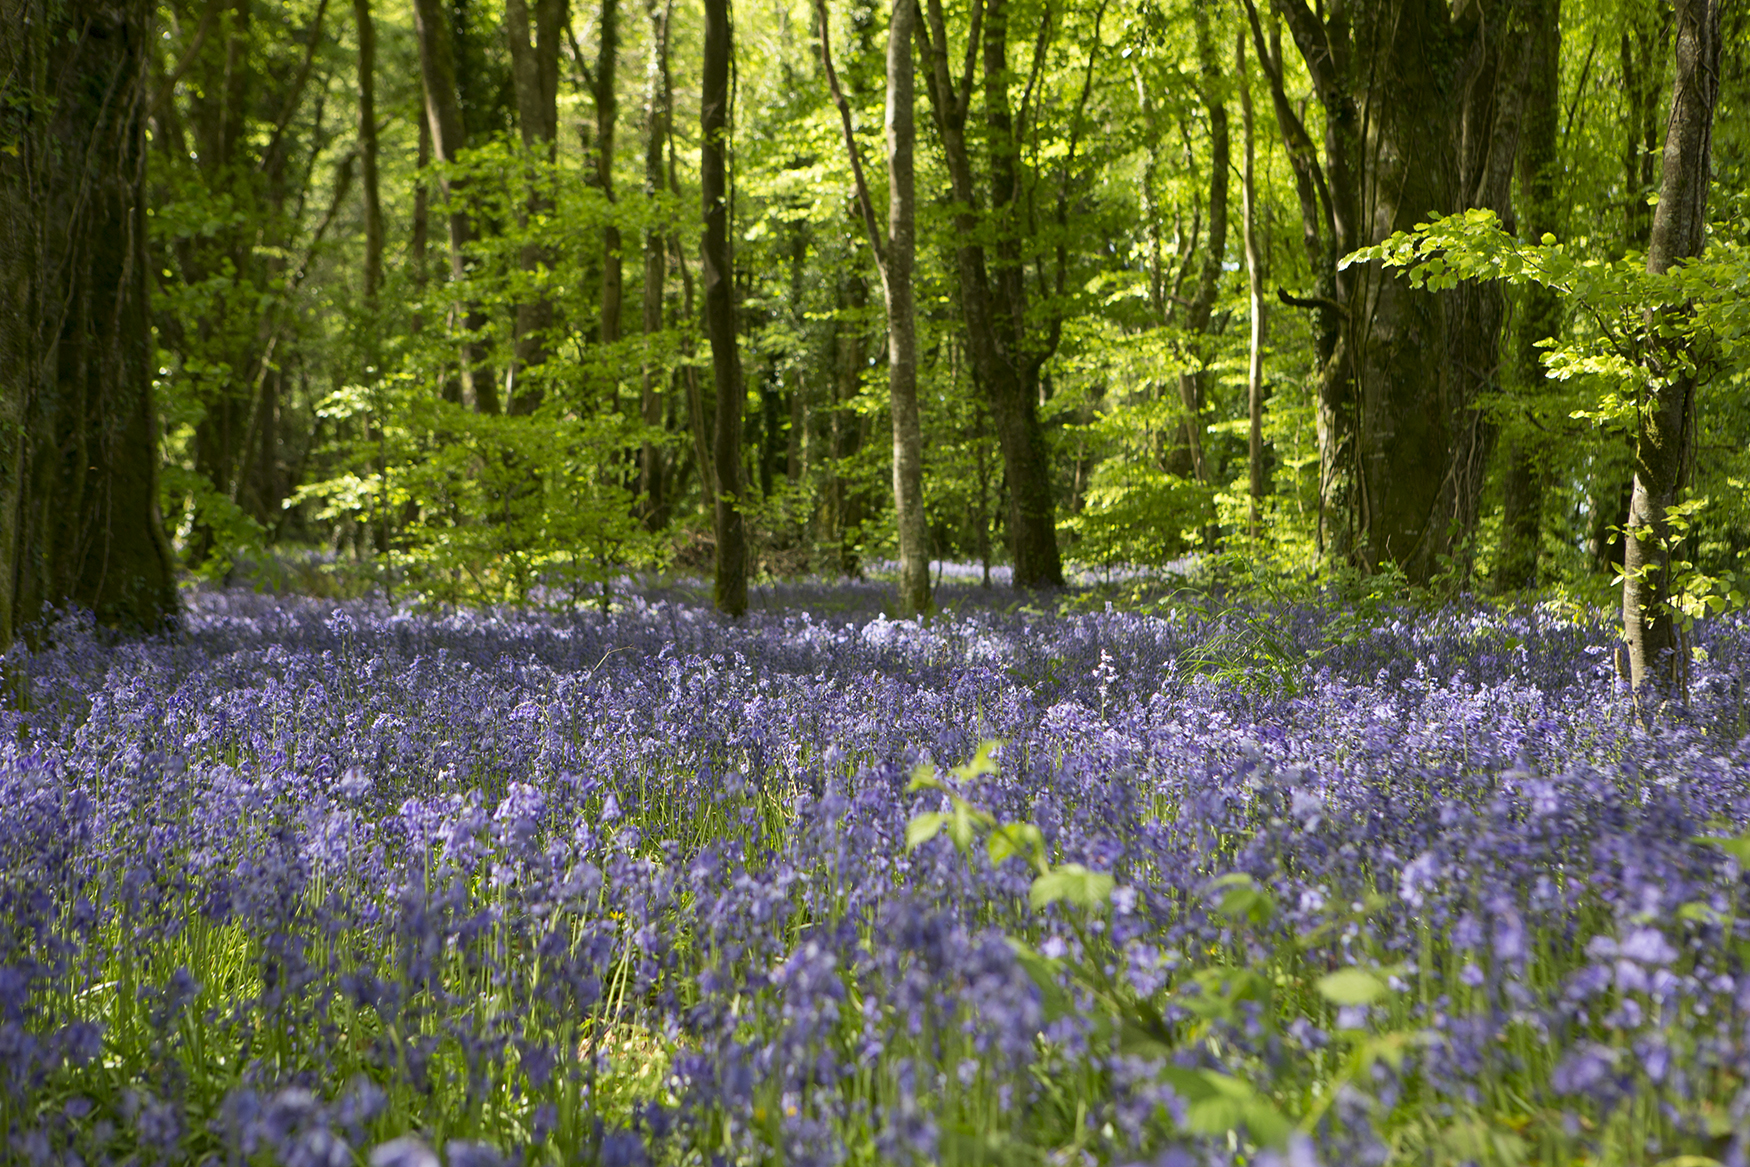 The Bluebell Forest at Castle Blunden Estate in Ireland. Photo courtesy Irish Distillers Pernod Ricard.